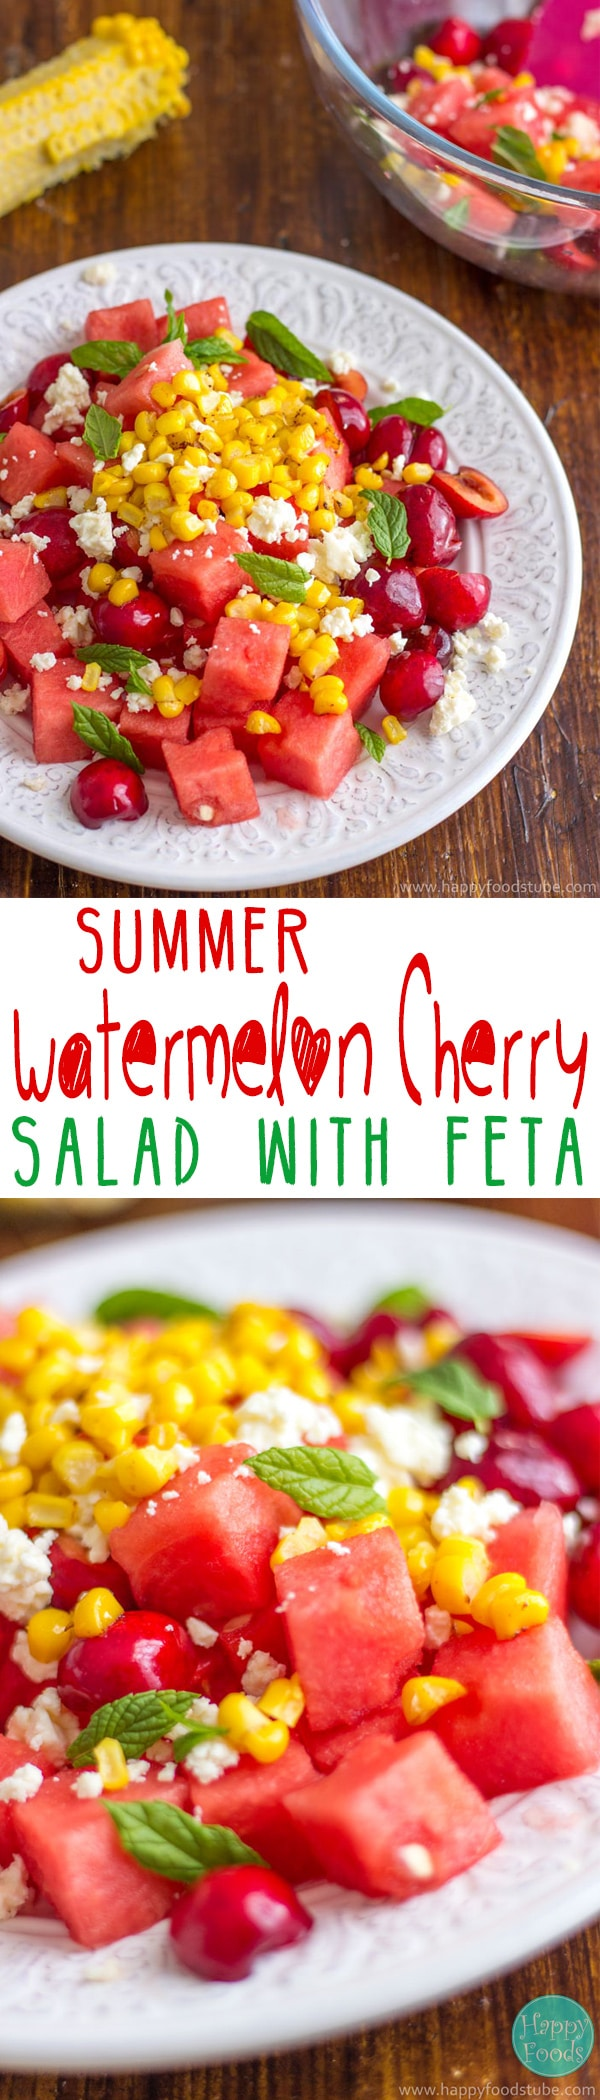 This summer watermelon cherry salad with Feta is great for picnics, summer parties, barbecue or lunch. It's refreshing, light and most importantly delicious recipe. Ready in 15 minutes